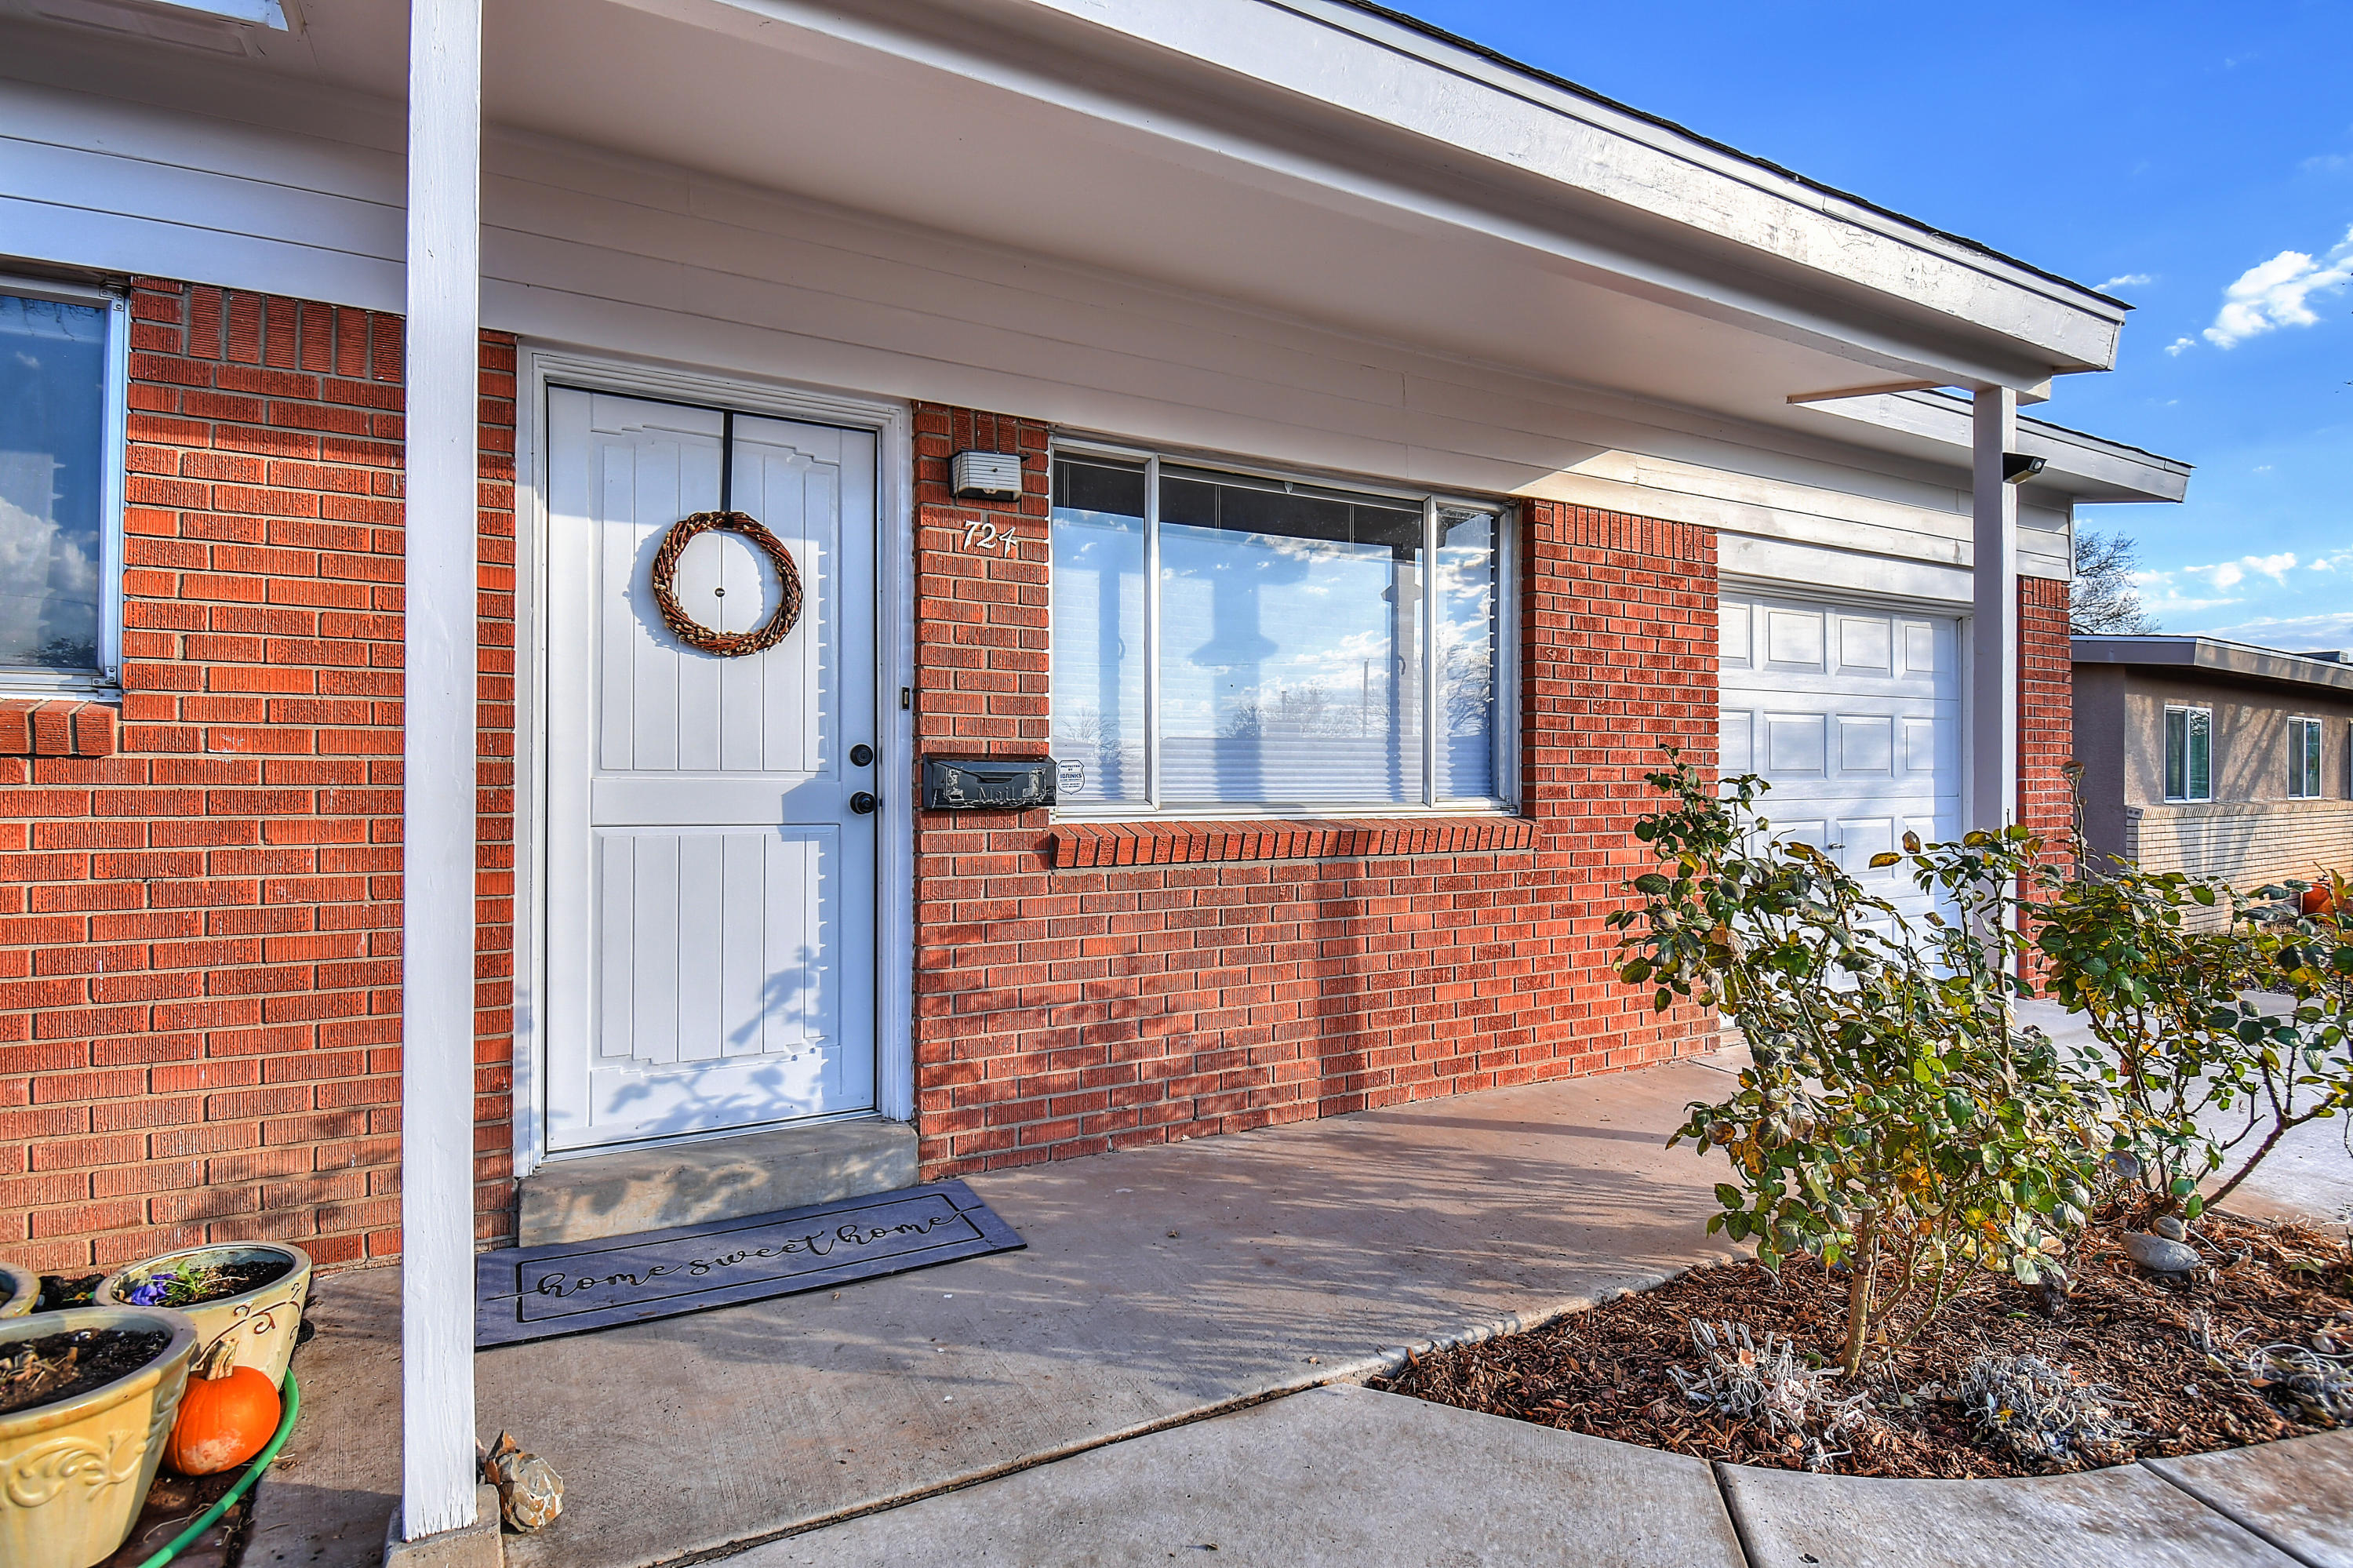 Welcome Home to this adorable single story 3 bed 2 bath home that has a wonderful Zen feel to it...Enter into the cozy living room as you admire the stained concrete floors...NO CARPET.  Cute kitchen that overlooks the spacious back yard for all of your gardening and relaxing needs. 400 foot flower garden! This one won't last long so schedule your showing TODAY!Abide by all of the COVID rules.Professional Photos coming today!